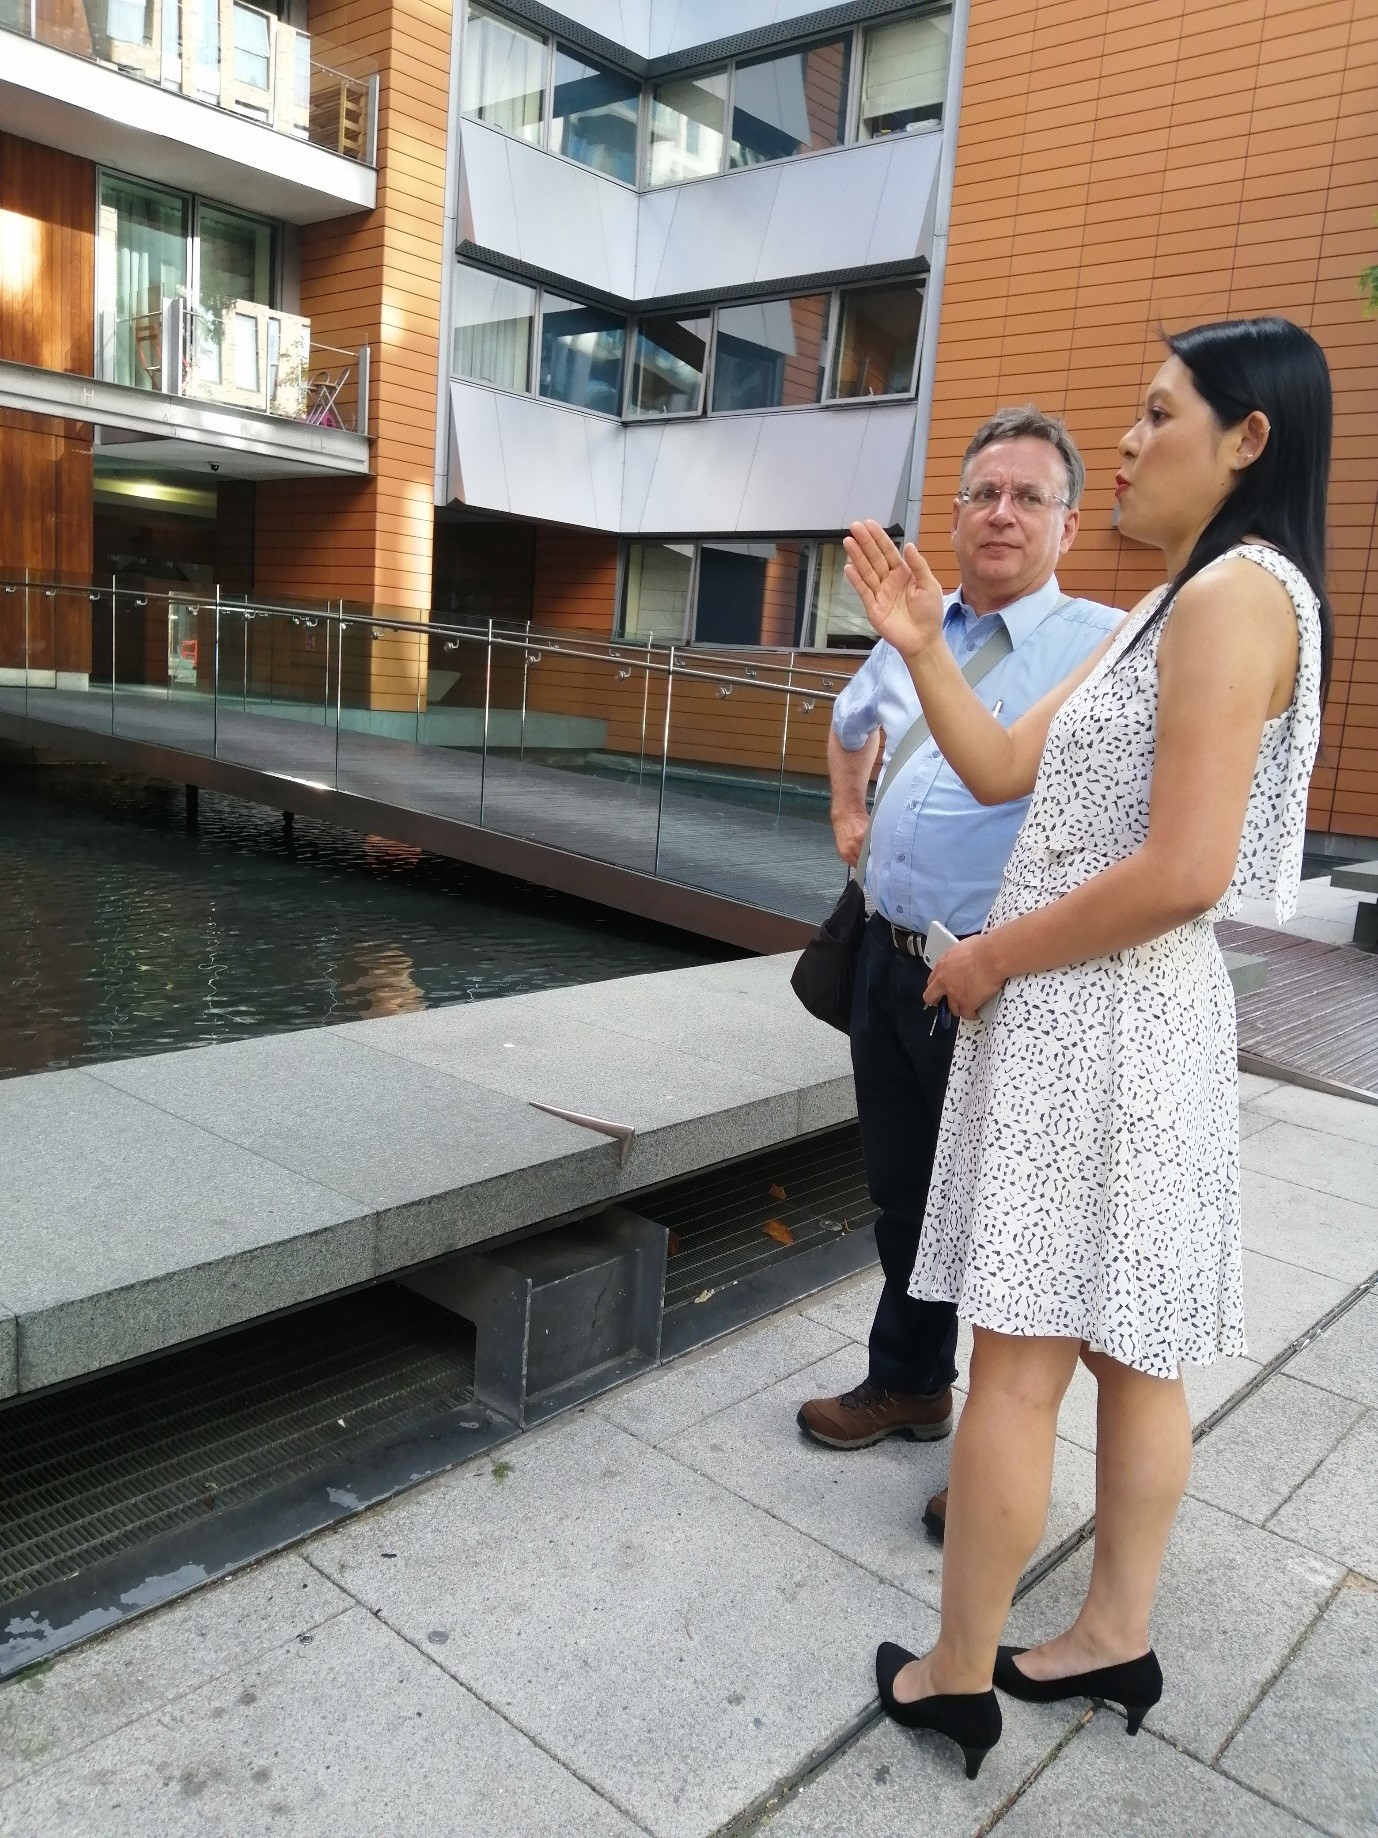 Mr Dismore with leaseholder Ju-Li Leong, viewing the ACM cladding on her block. She faces bills in excess of £40,000 from the managing agents, despite Government assurances that leaseholders should not face such huge bills.